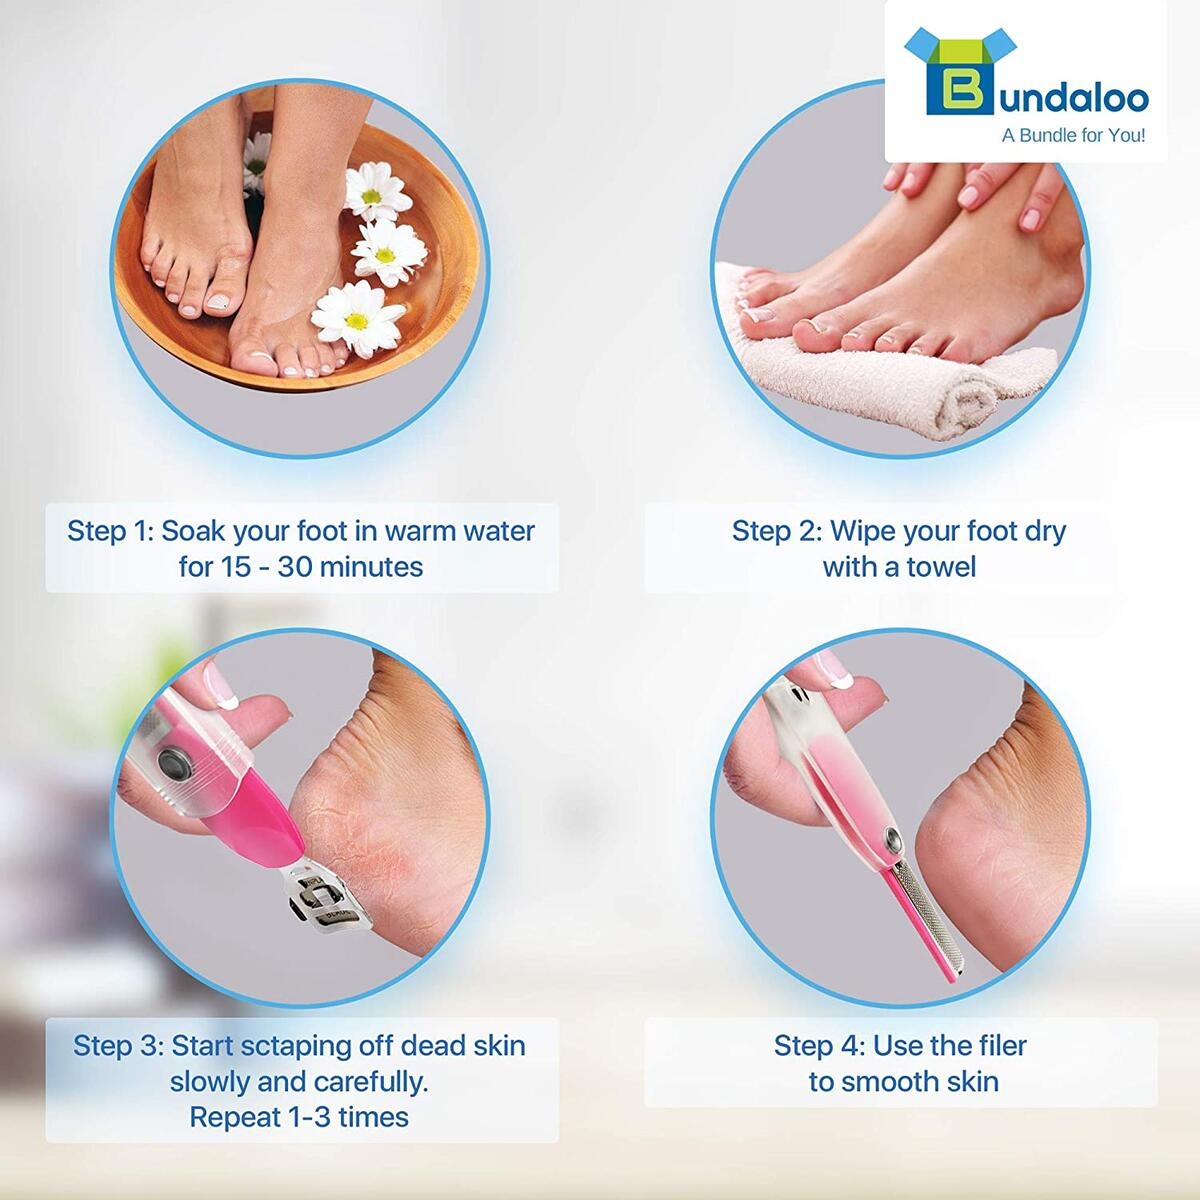 Bundaloo Callus Shaver Rasp for Feet - 2-in-1 Foot Spa Tool for Cracked Rough Heels - Dry Skin Remover - Stainless Steel, Rust-Resistant - Professional Pedicure Tool With 5 Refill